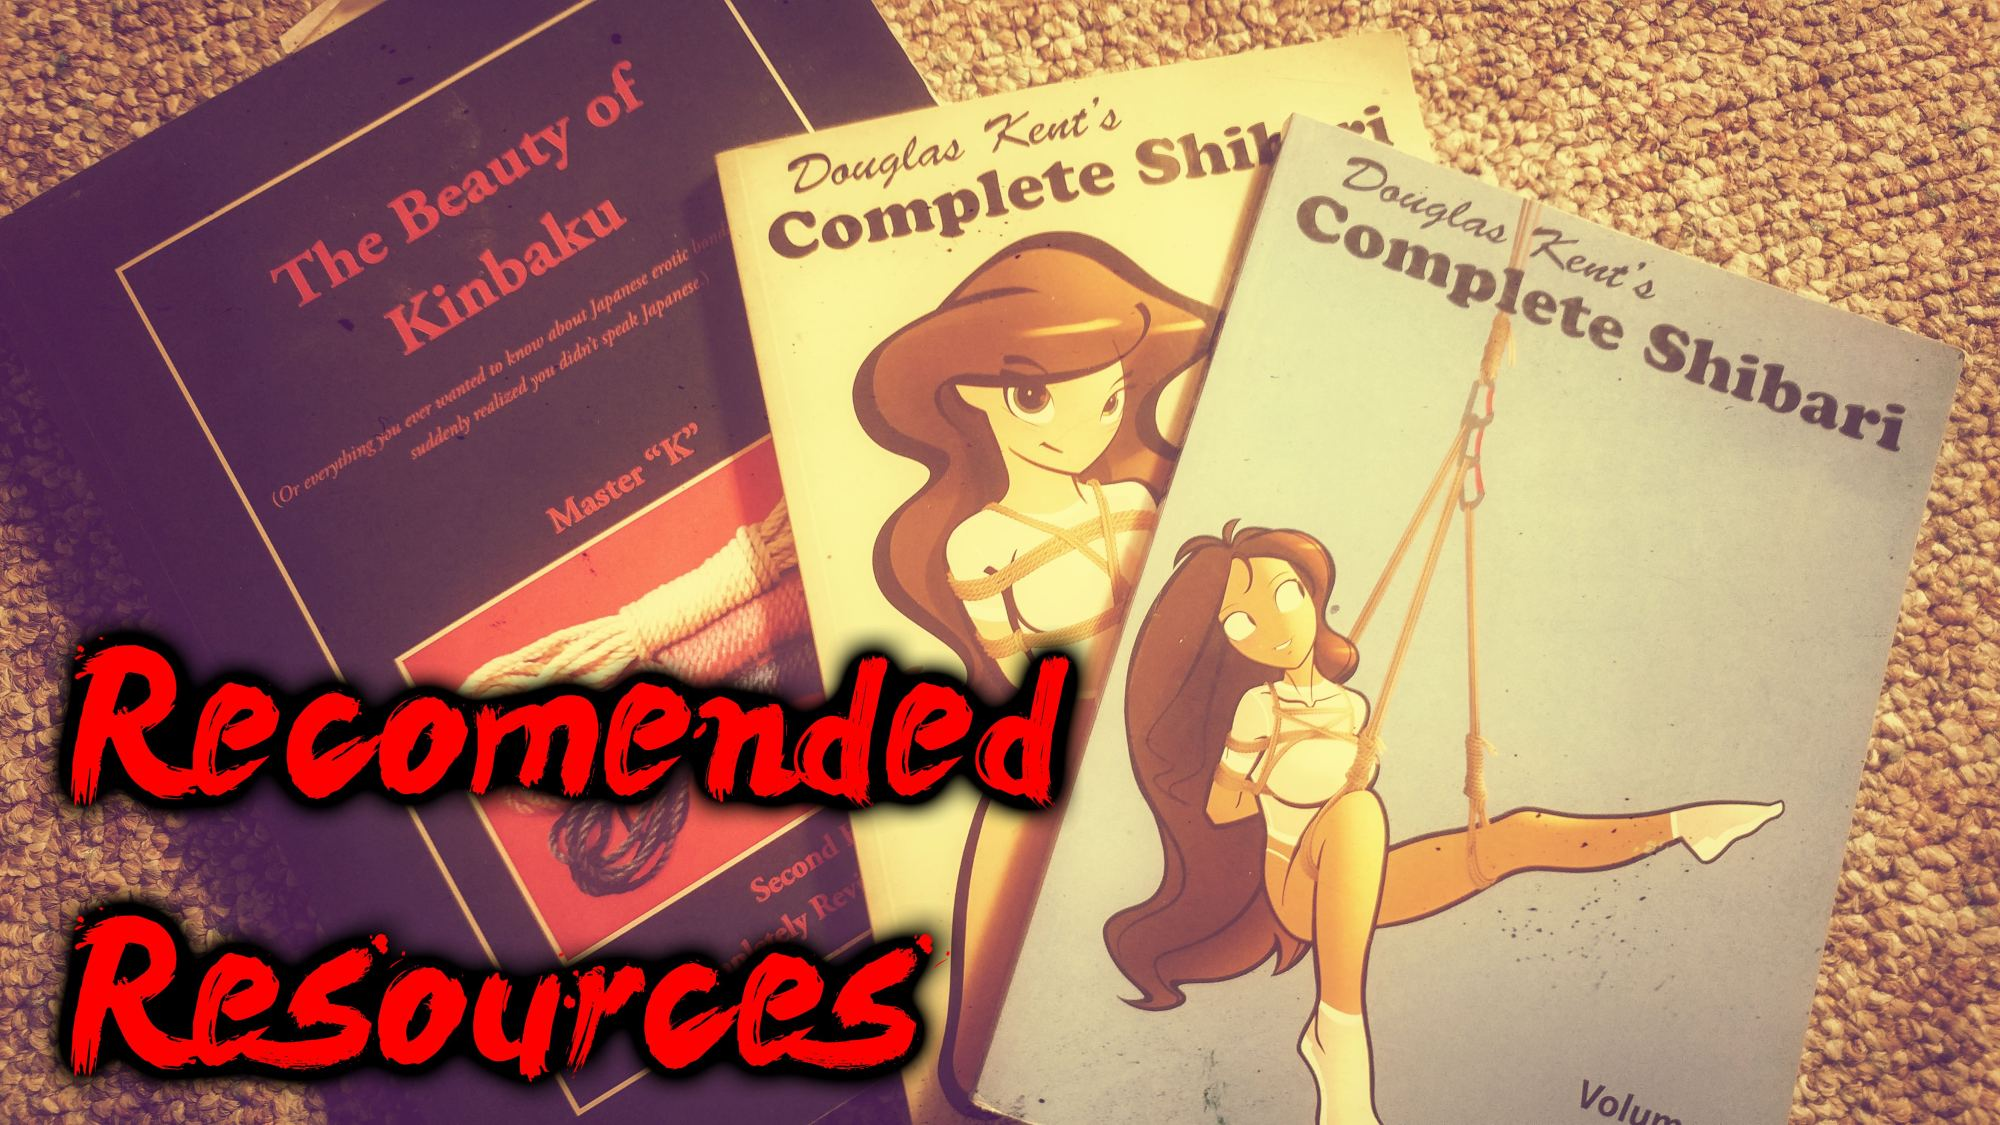 shibari-kinbaku-recommended-resources